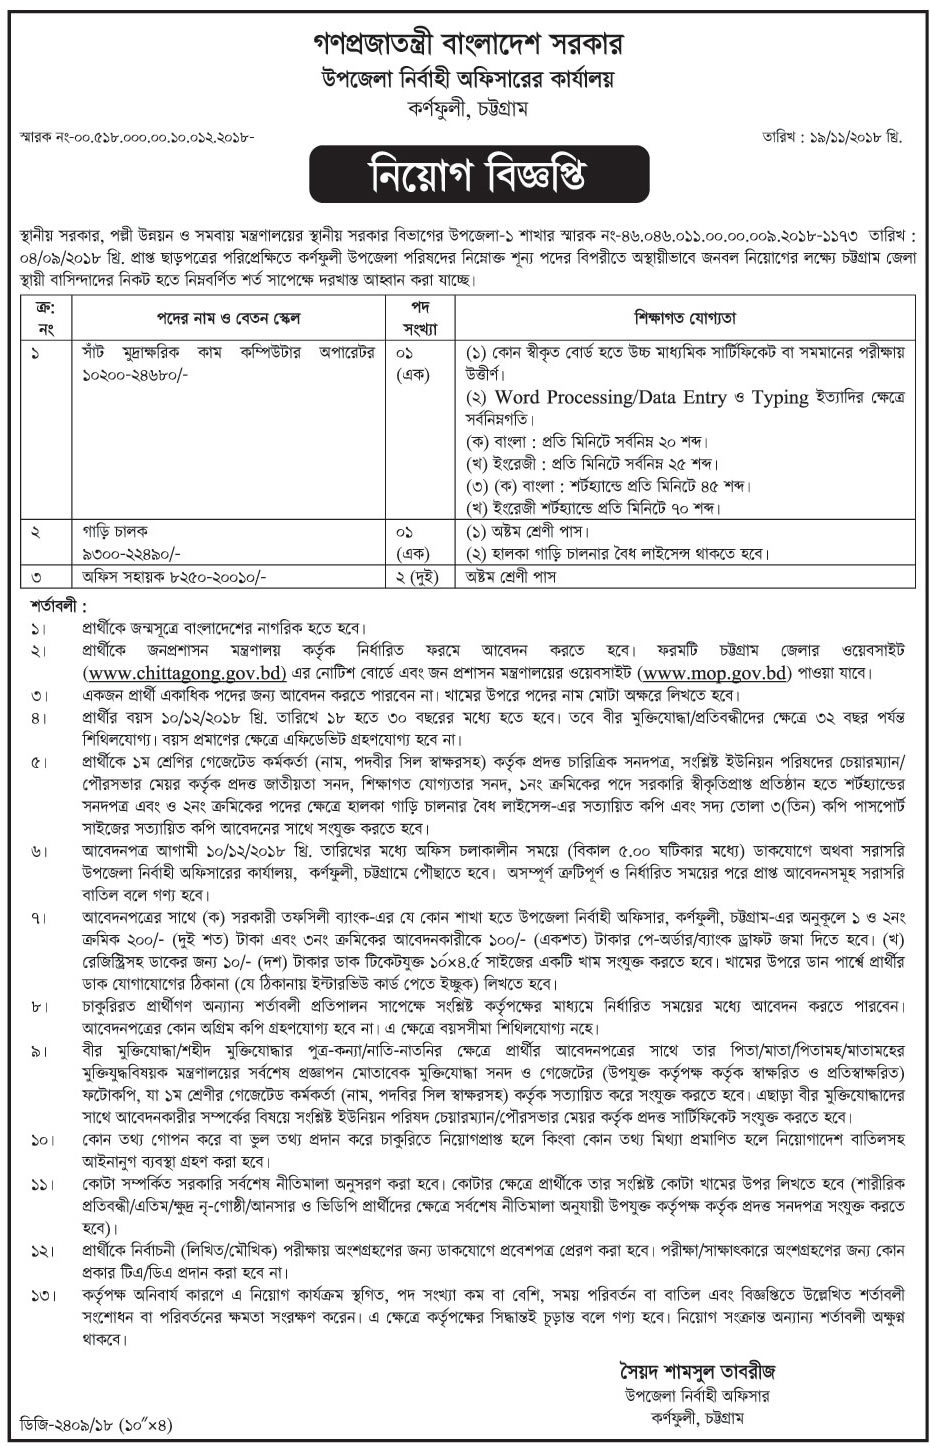 Upazila Executive Officer Job Circular 2018